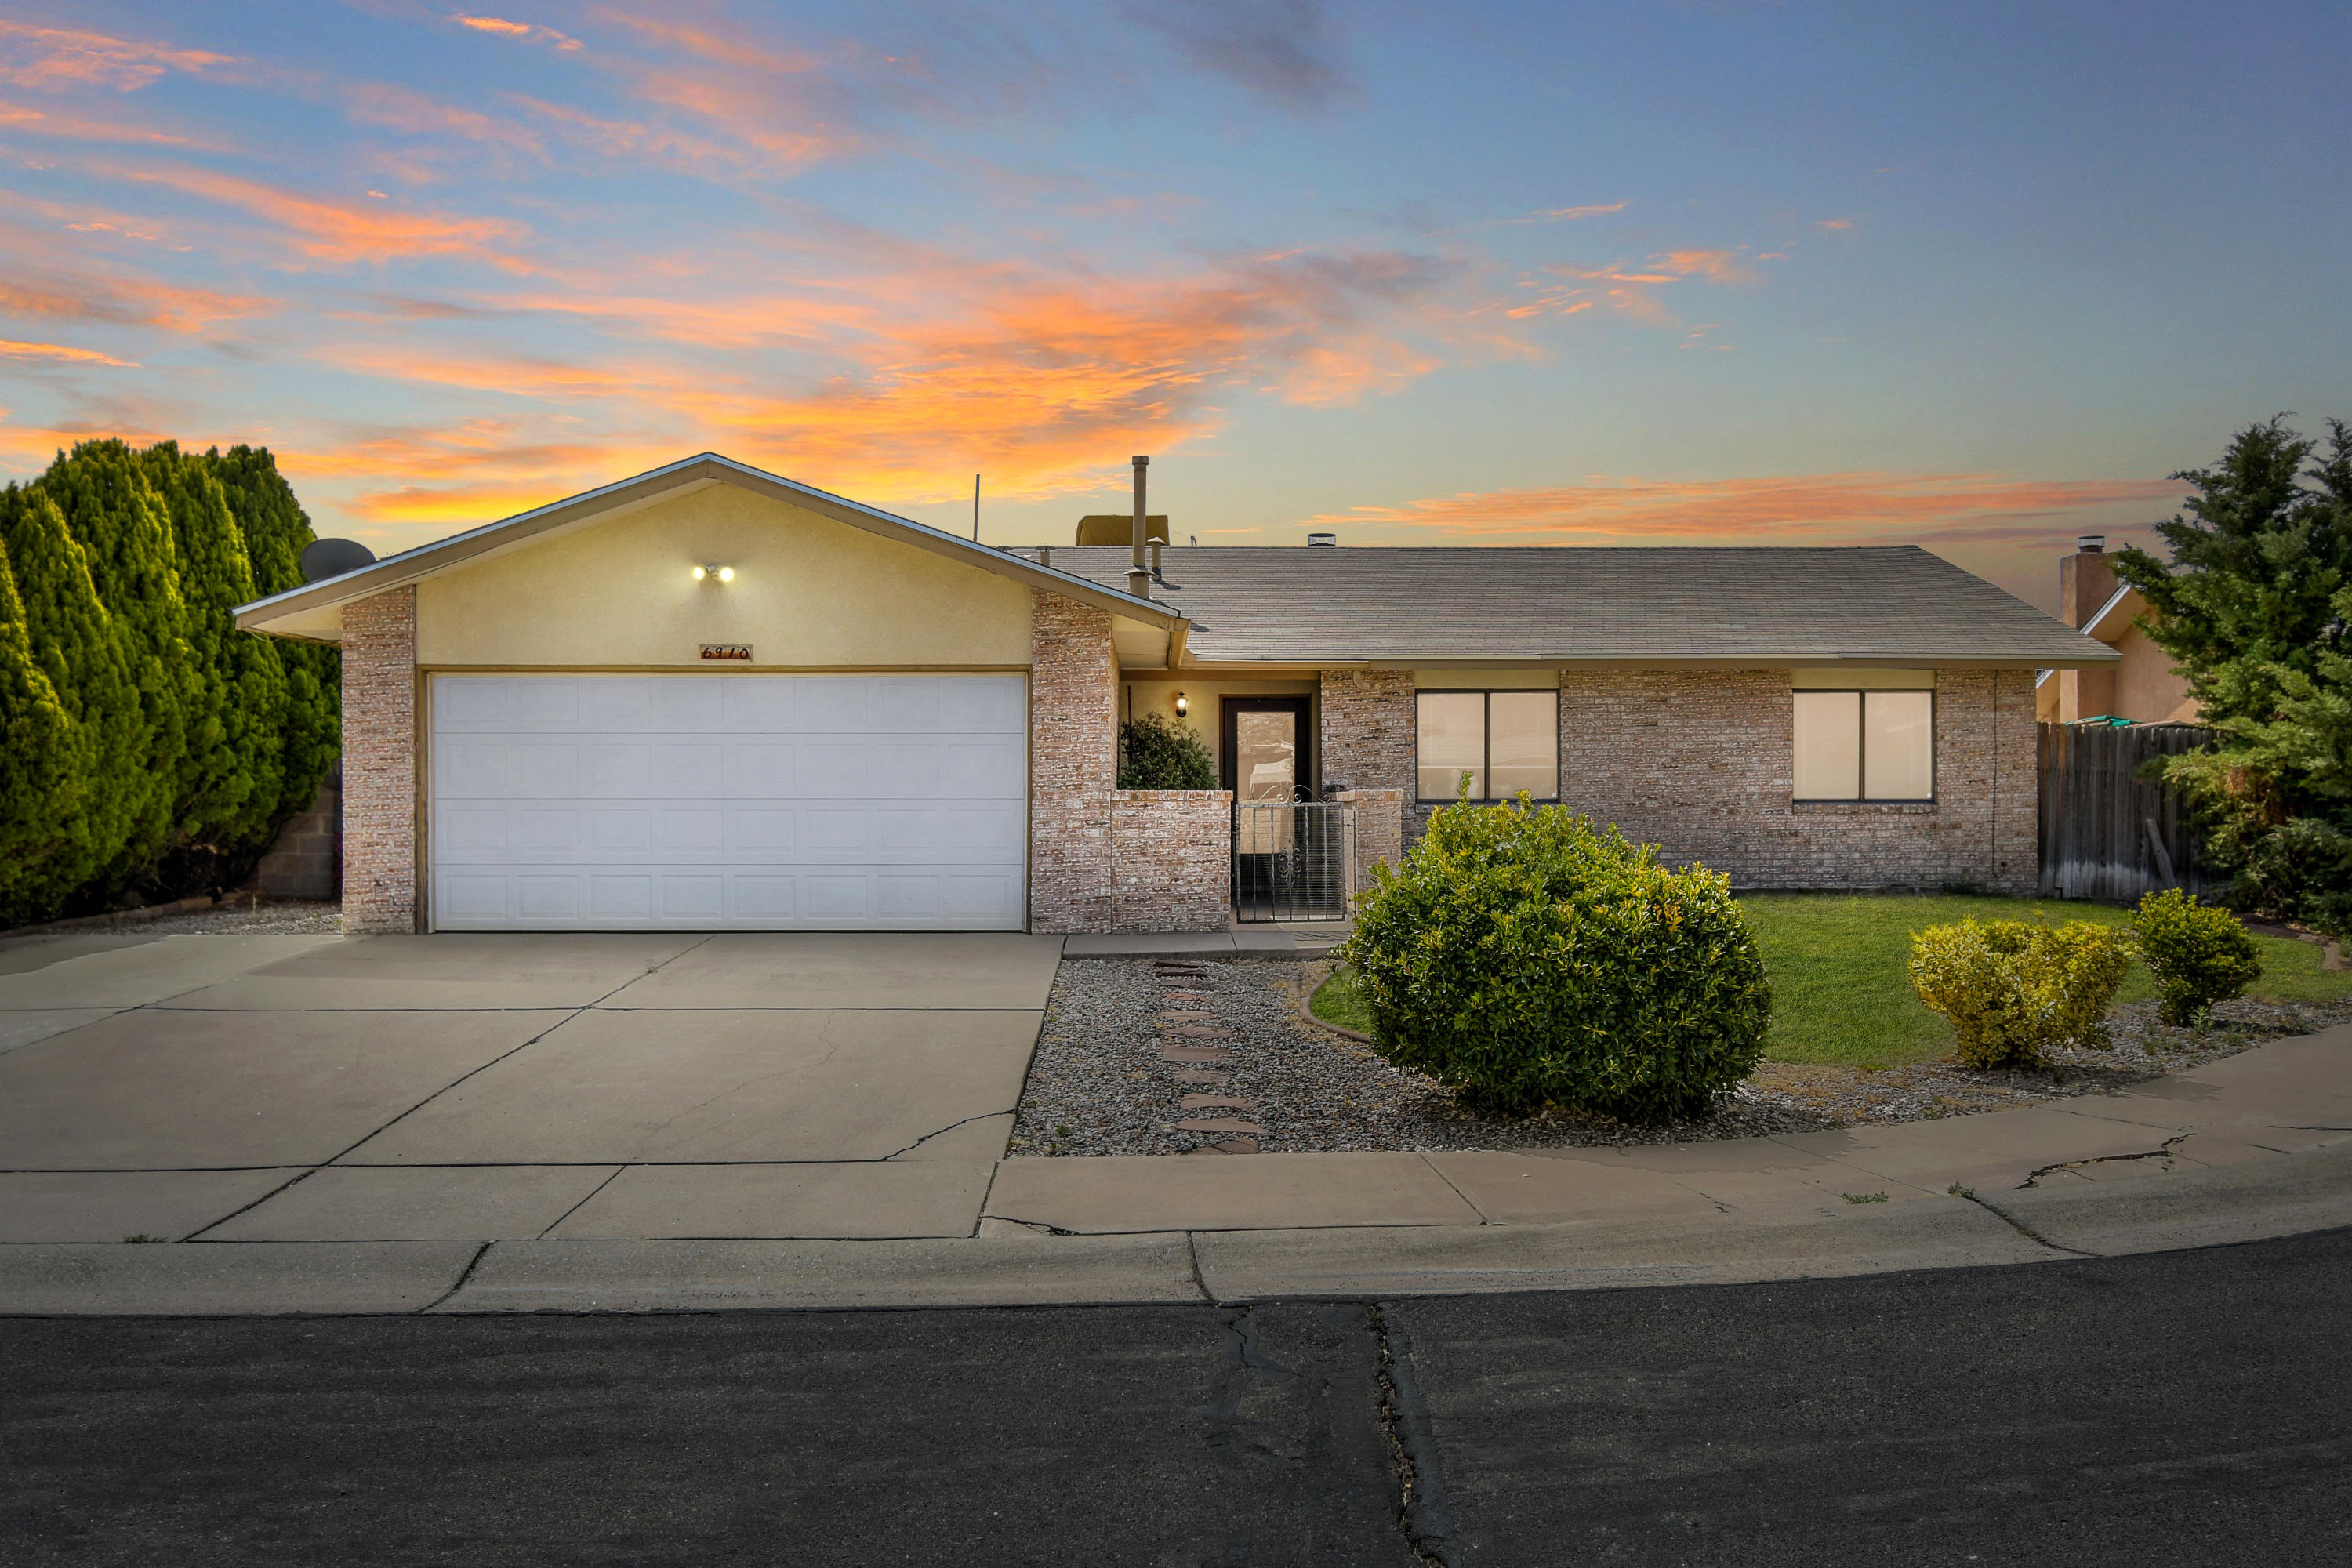 **No showings until Friday 04/23/2021**  4 bedroom 2 bath Westside home on a quiet cul de sac is move in ready!  This westside gem has a bright open floorplan with a great size backyard!  Located next to a park, dog parks, library and walking trails.